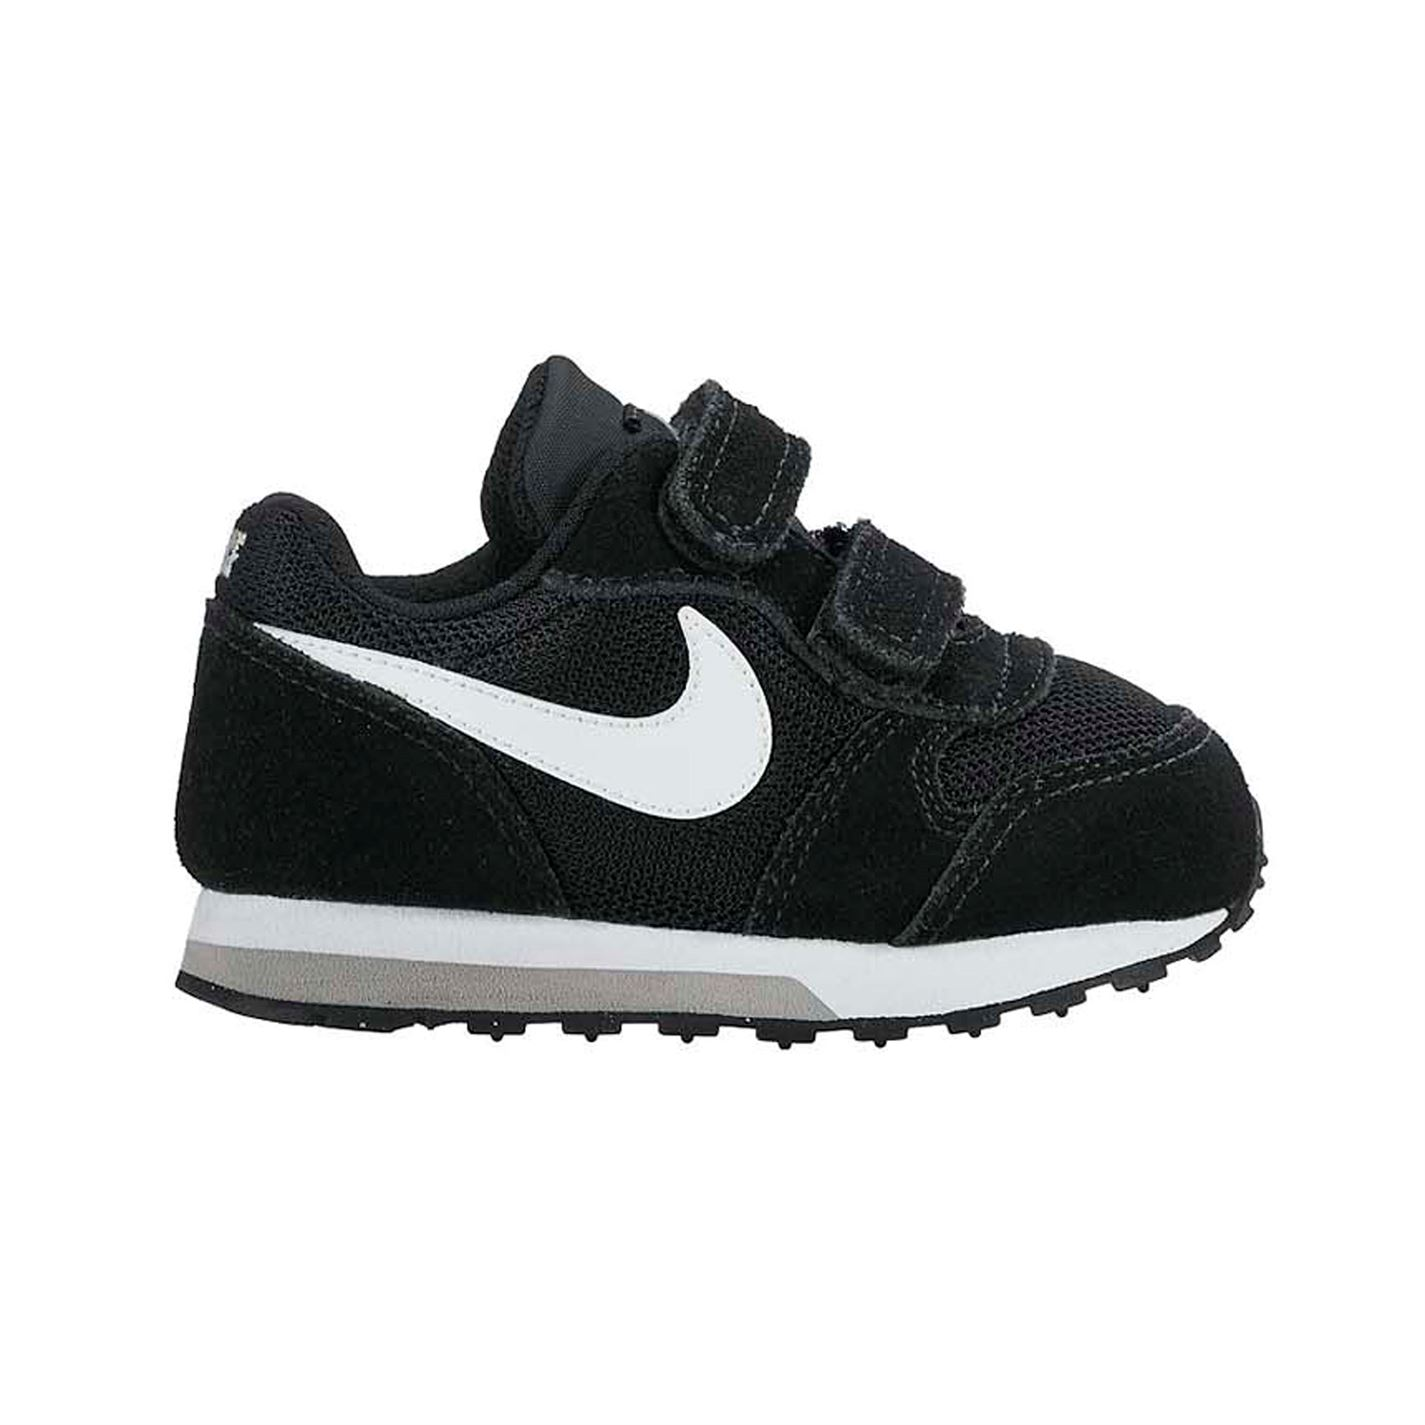 bc32a57b4f Detské topánky | Nike MD Runner 2 Trainers Infant Boys Black/White ...